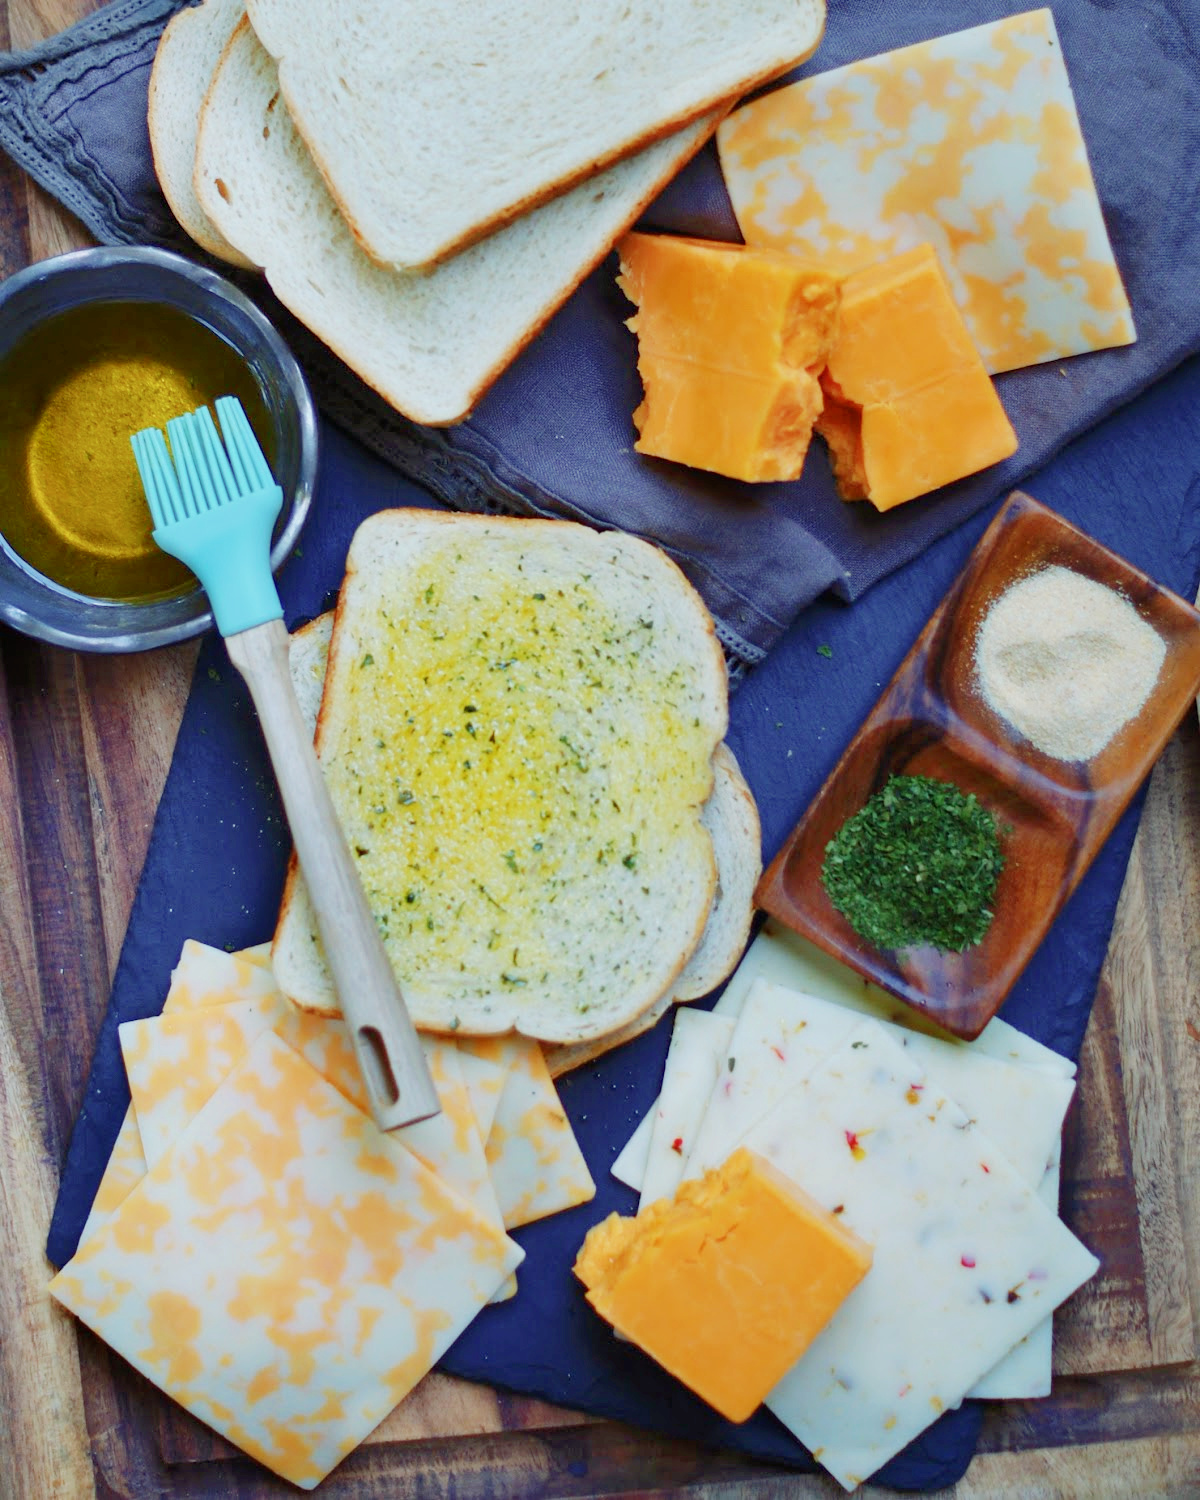 Ingredients to make grilled cheese croutons